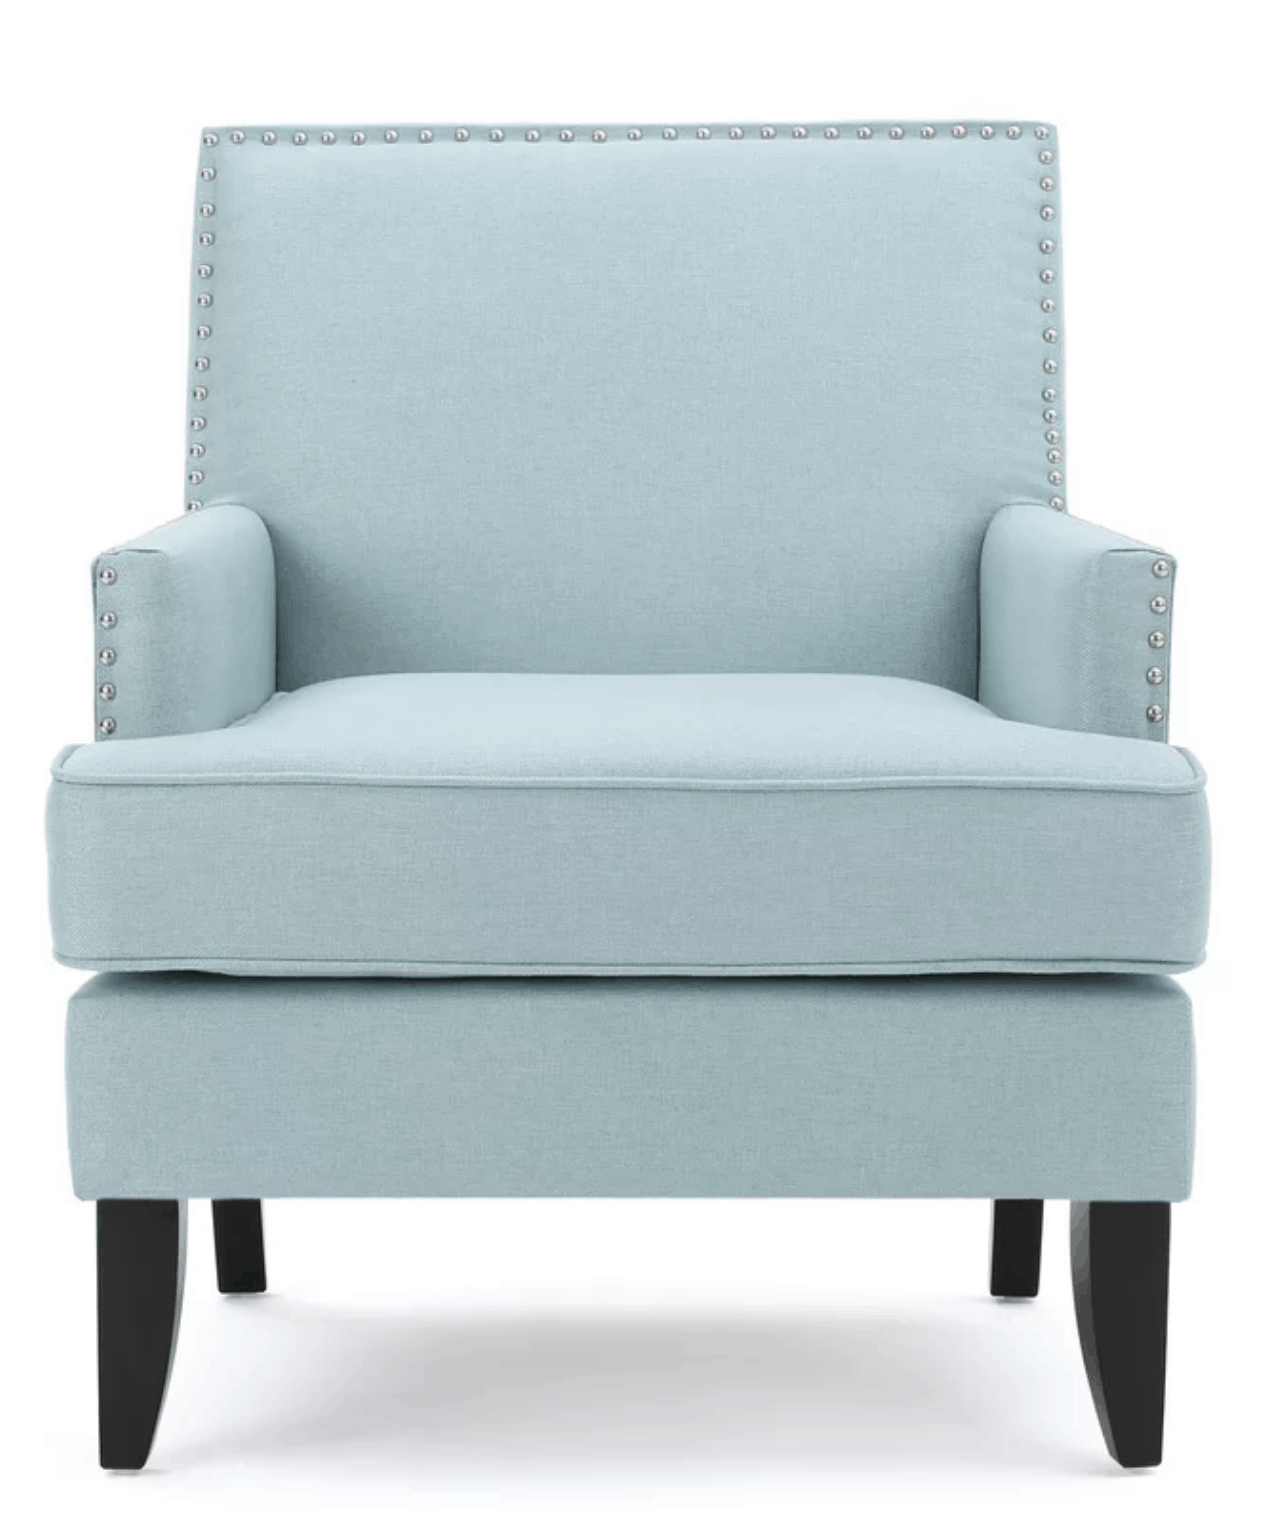 I Love The Clean Lines Of The Back And The Arms. Itu0027s A Much More Tailored  Chair That Brings A High End Feeling To A Space. I Also Am Loving The Color!